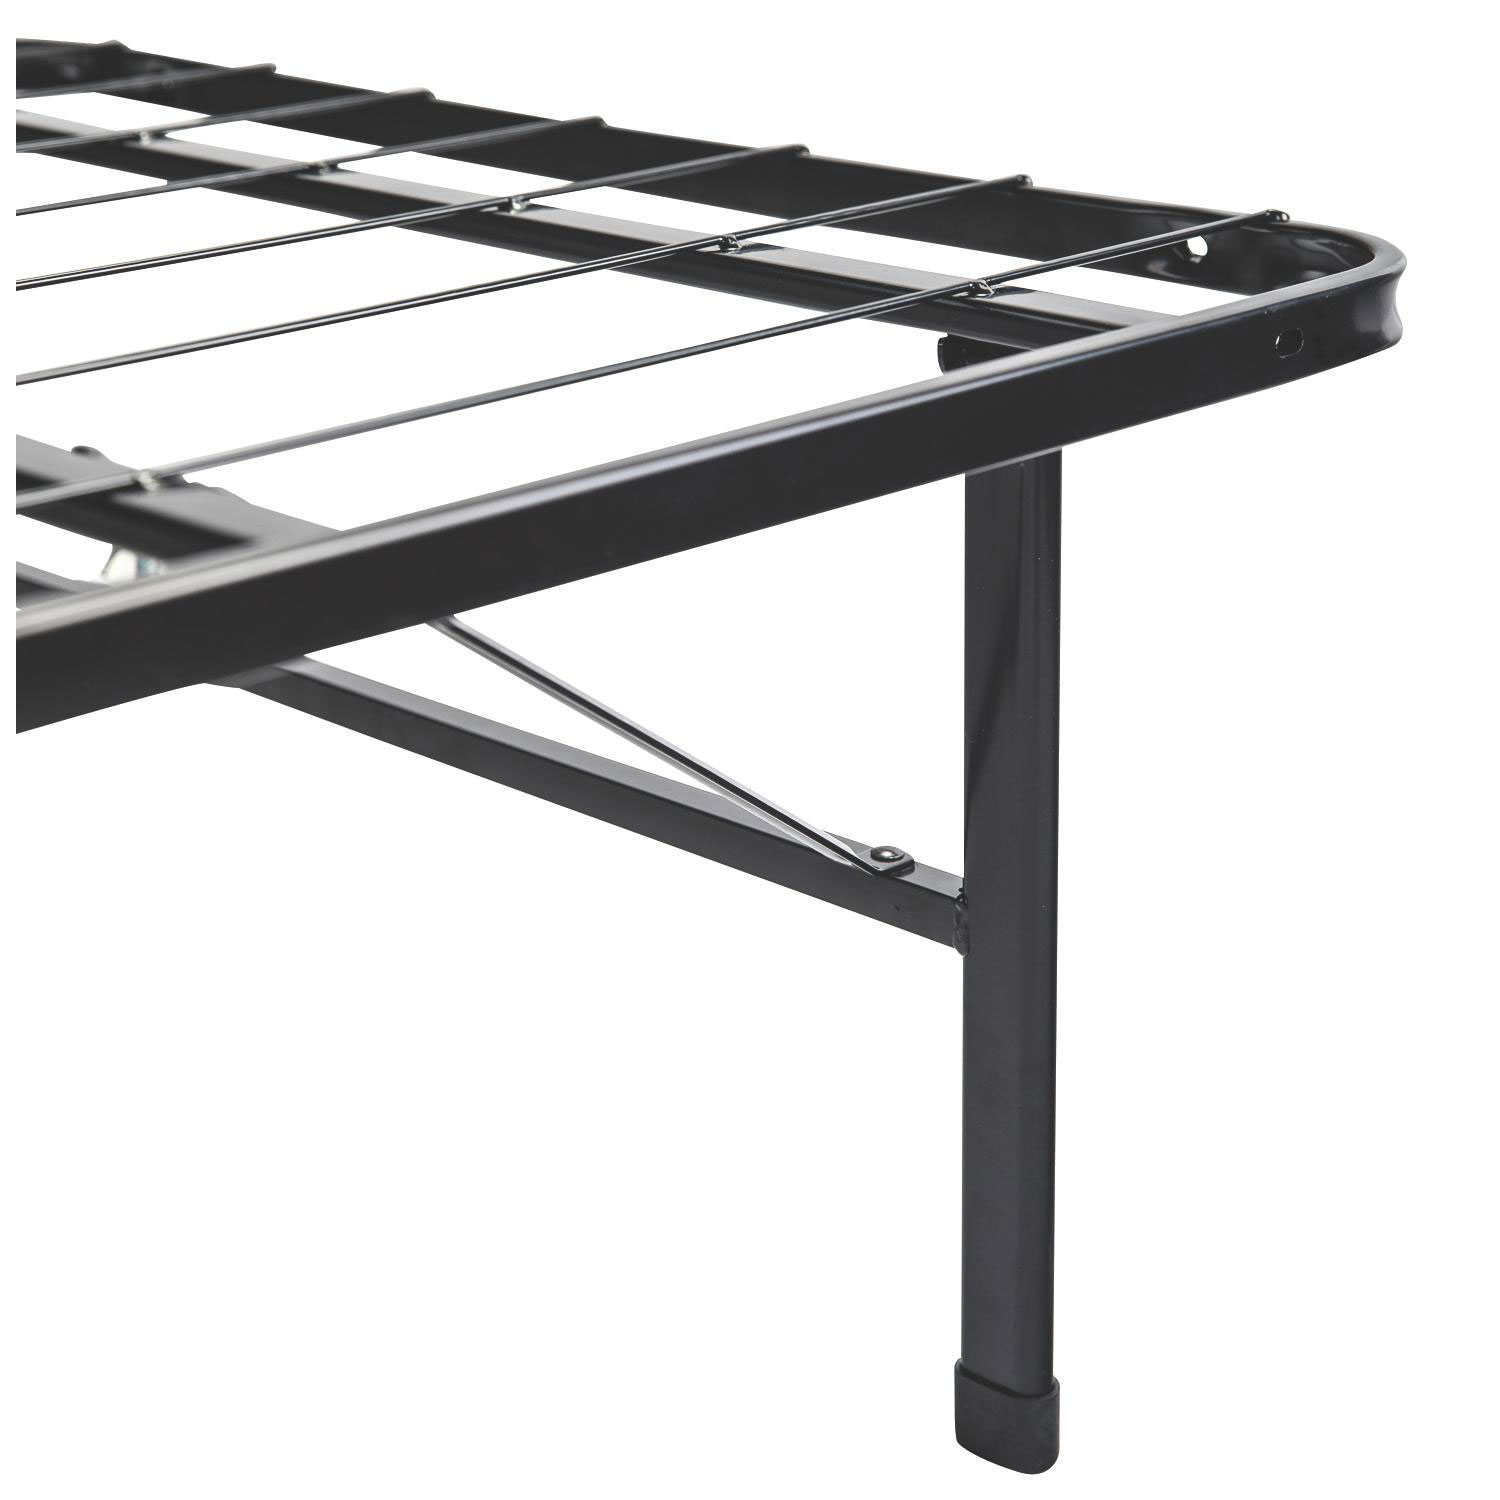 Zinus smartbase deluxe bed frame   queen : box springs   best buy ...